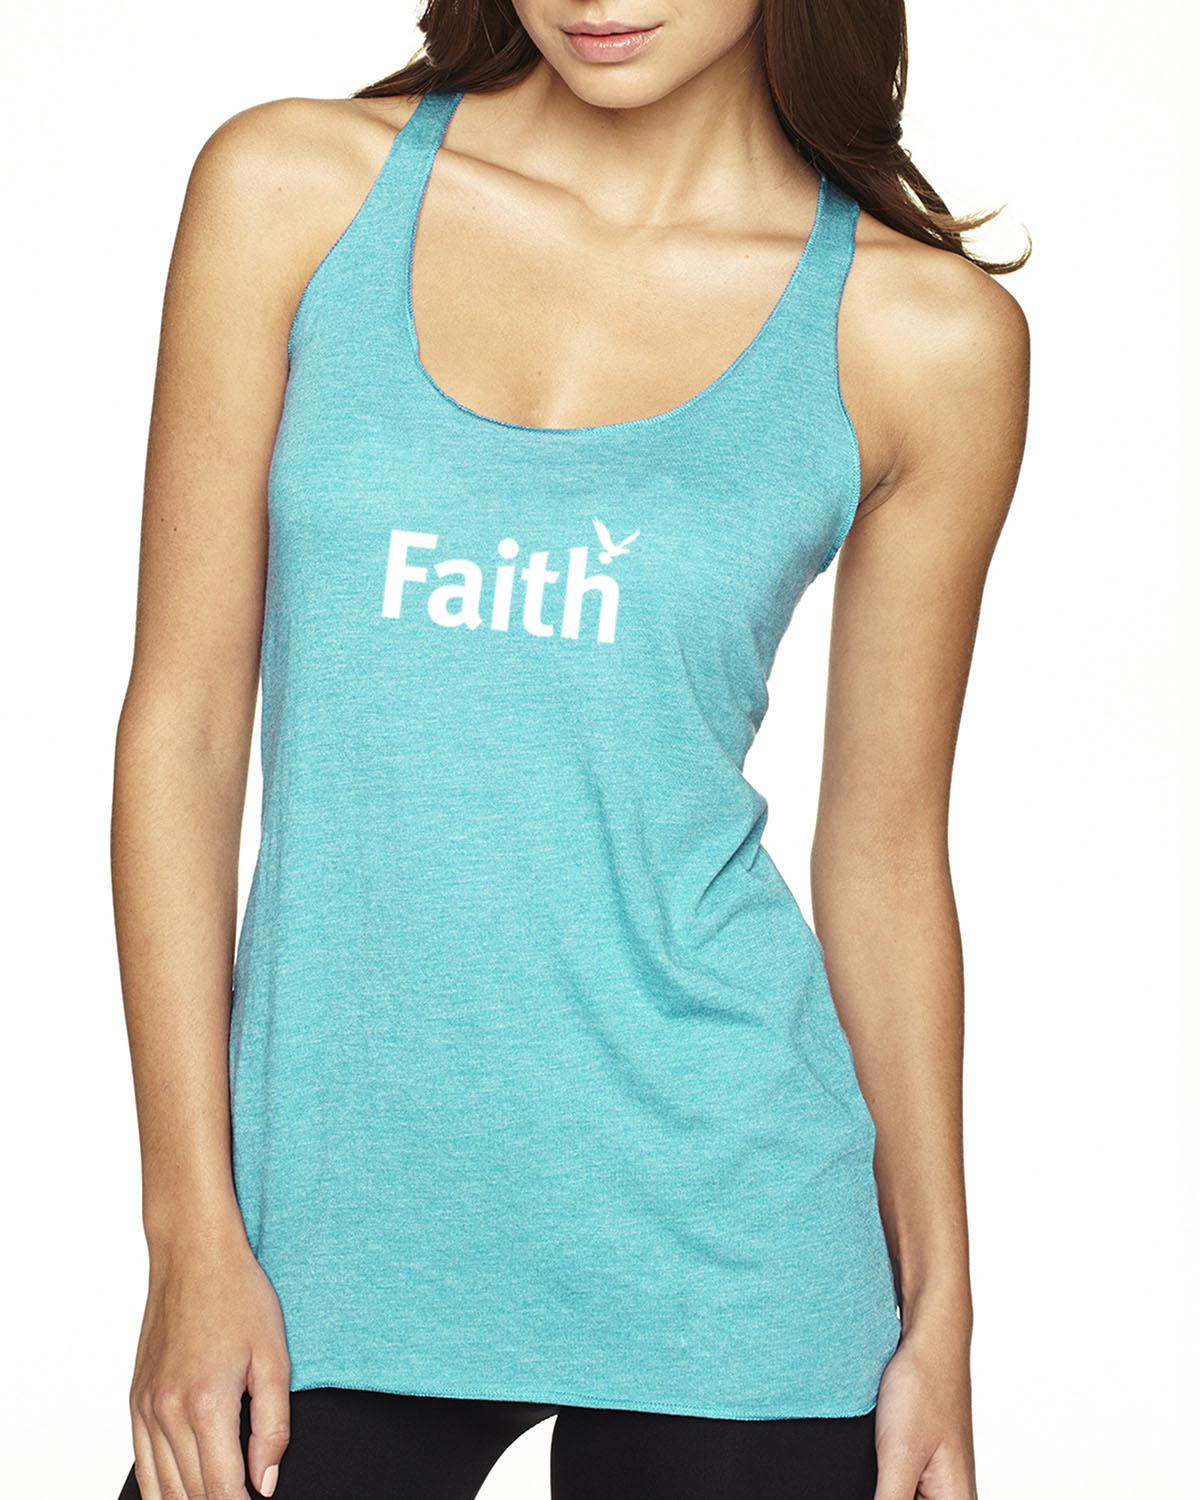 Women's Tri-blend Racer-back tank top (Tahiti Blue)